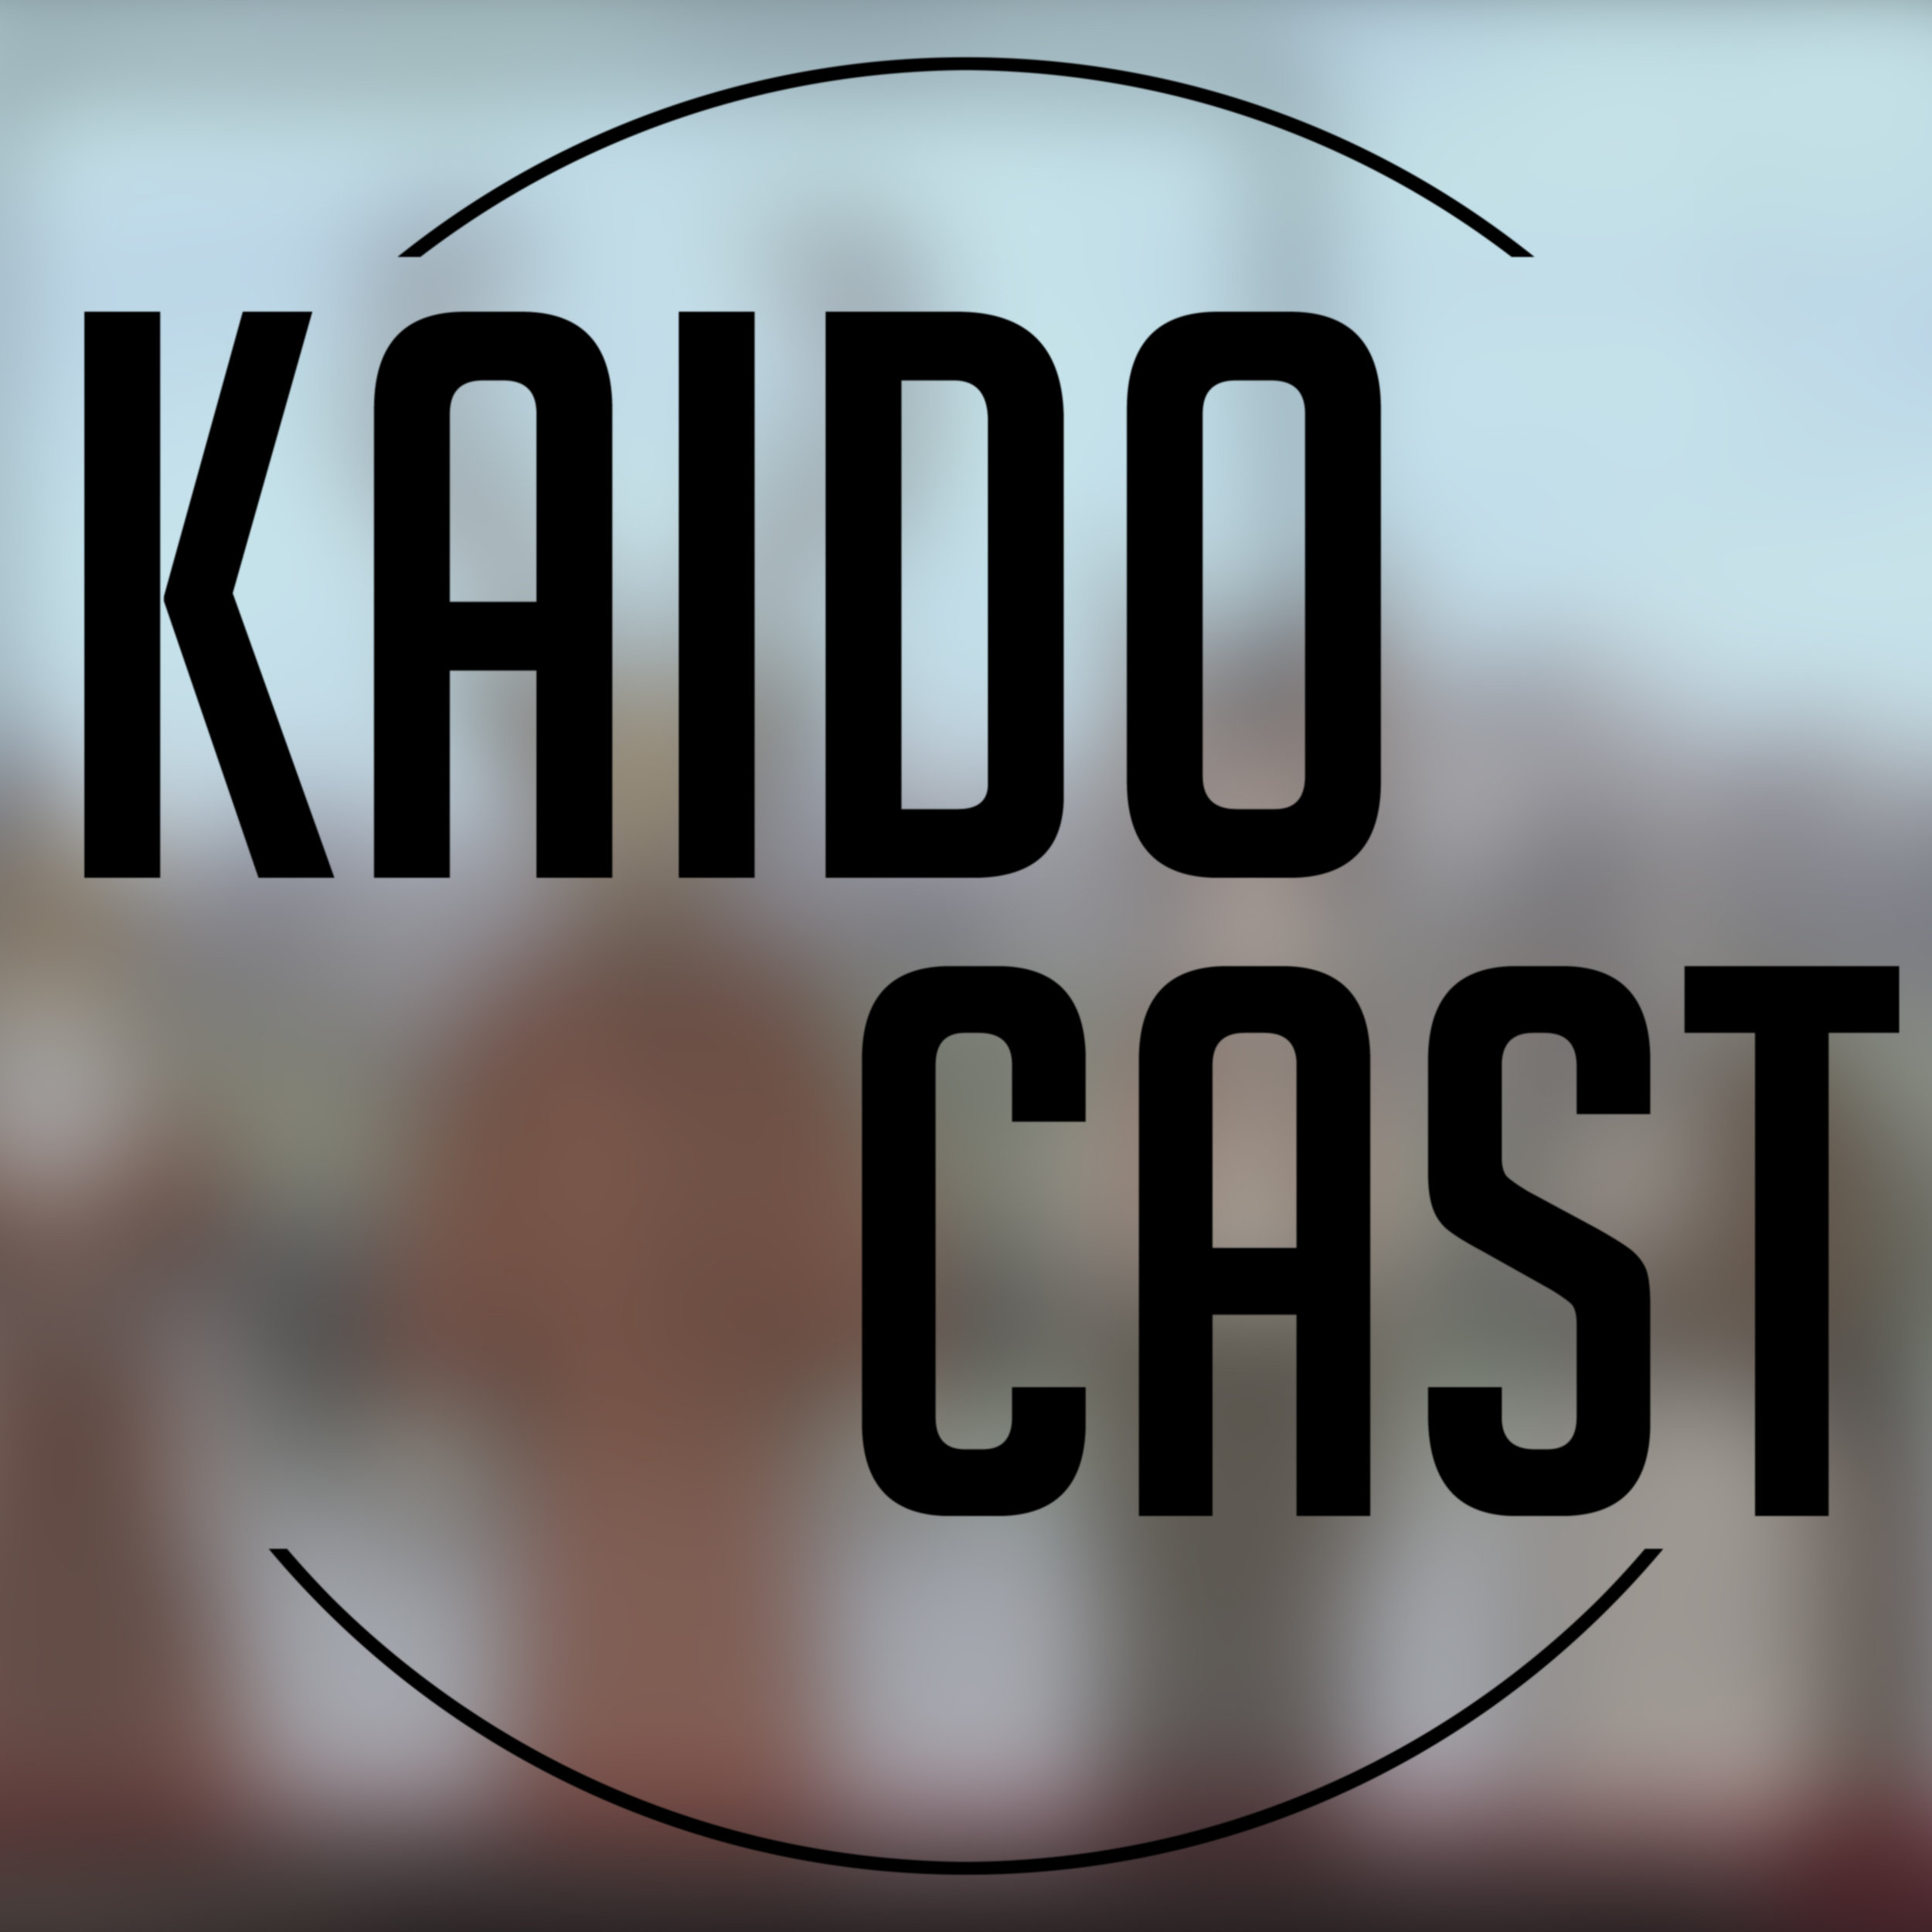 KAIDO Cast 28 - Welcome to the Paper Clip Biz - All is, mostly, well in the gaming landscape. Coming off the heels of a surprise Nintendo Direct and CES 2018, we update you with what we found interesting, but only after we talk about fashion and paper clips.